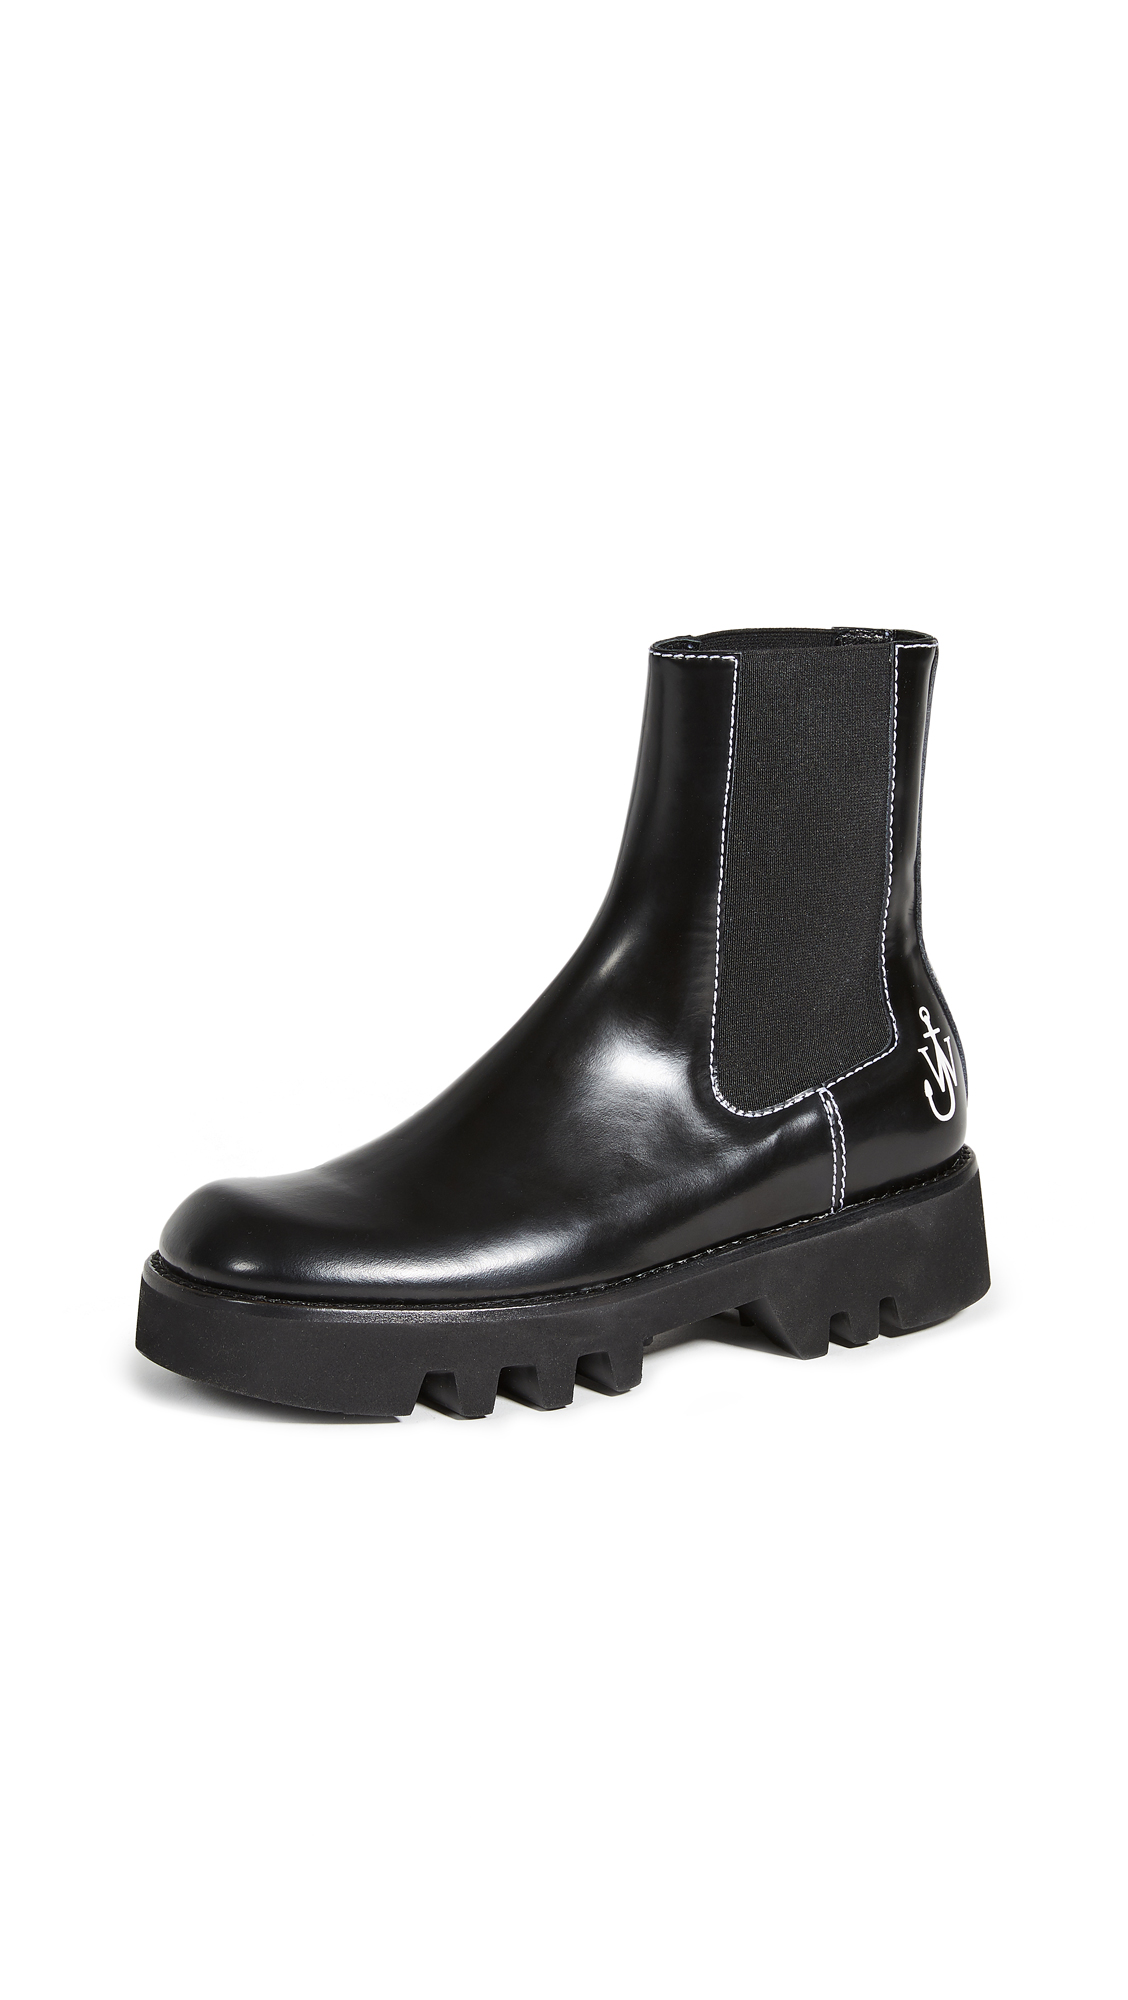 Jw Anderson CHELSEA BOOTS